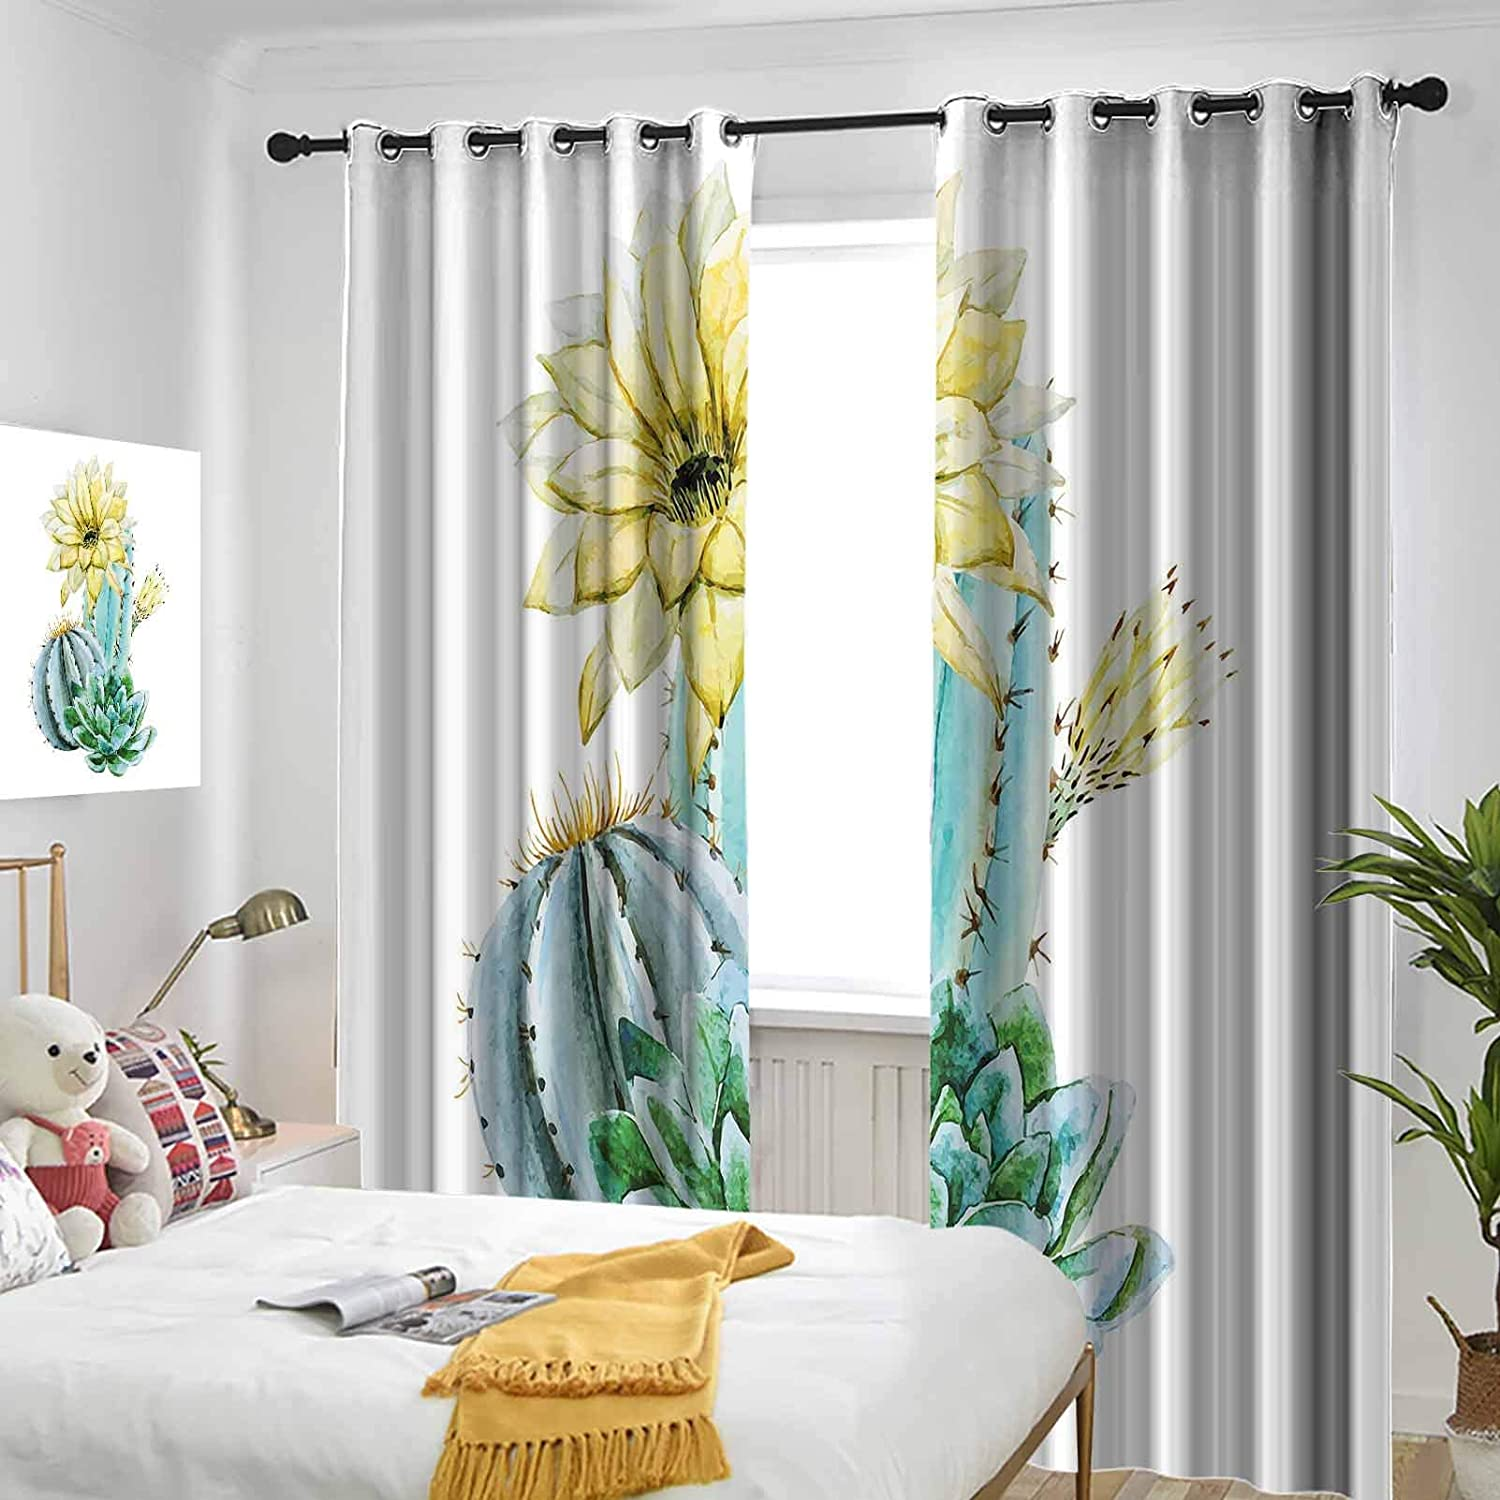 Succulent Thermal Insulated Drapes Water Light Sale SALE% OFF Indianapolis Mall Curtains Blocking